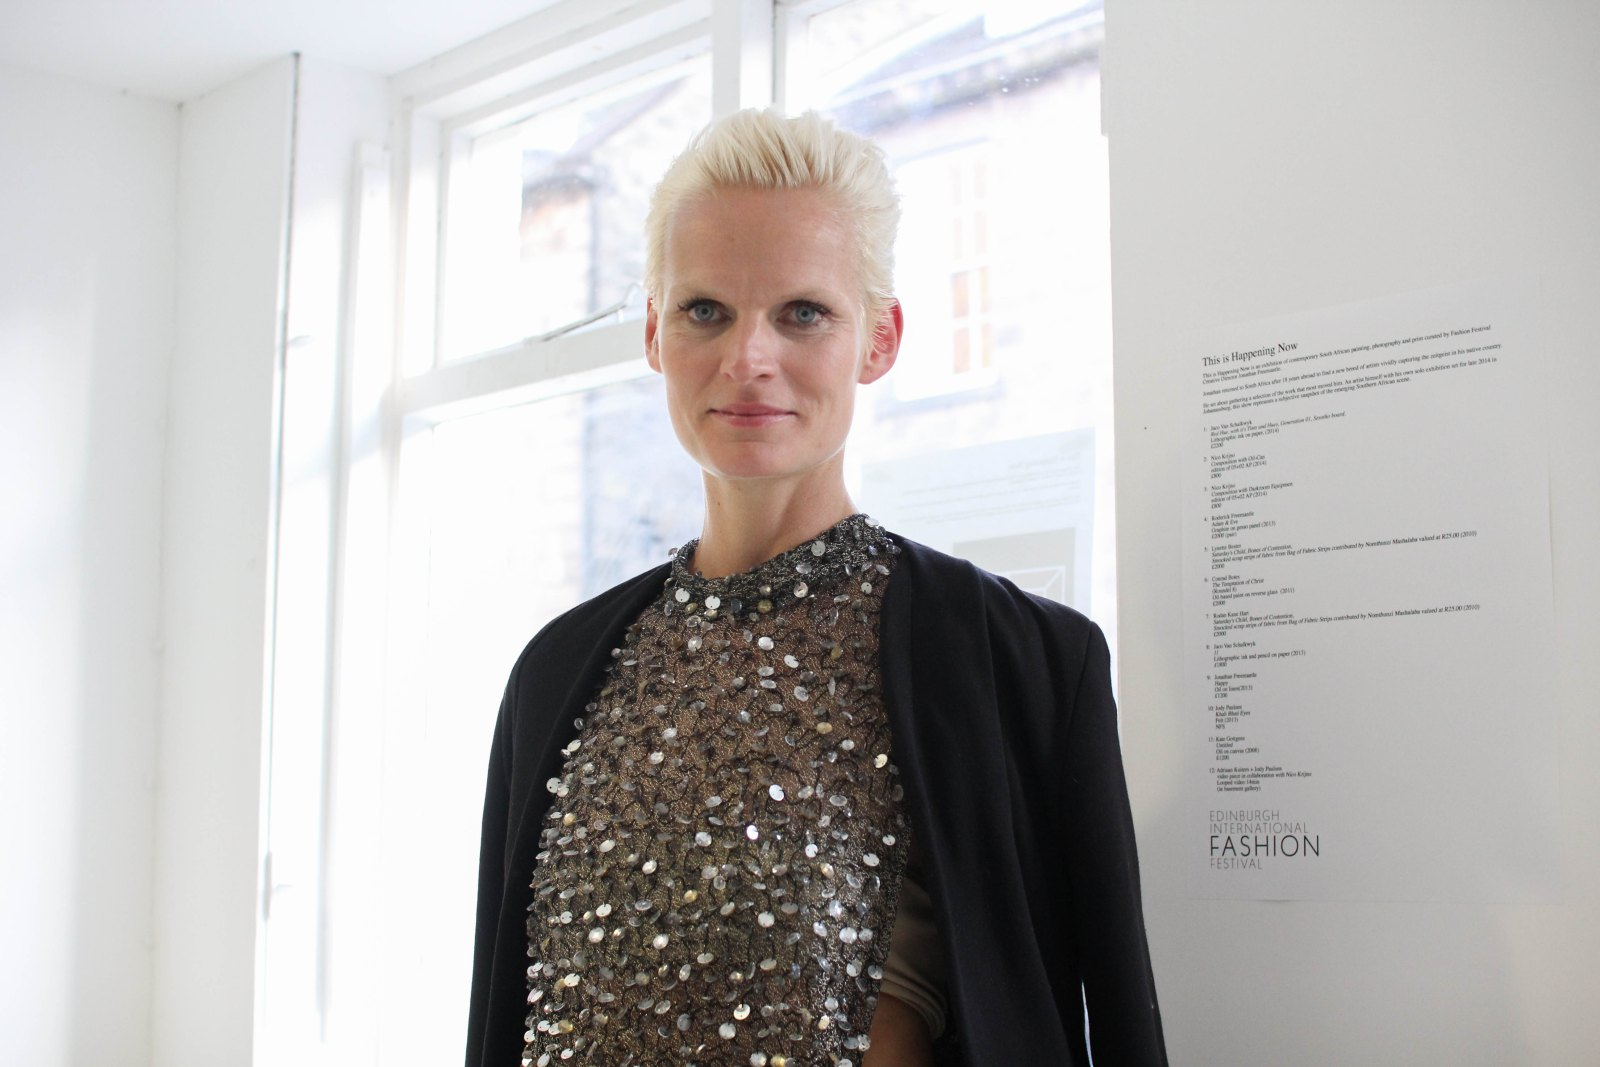 Anna Freemantle, Director of the Edinburgh International Fashion Festival